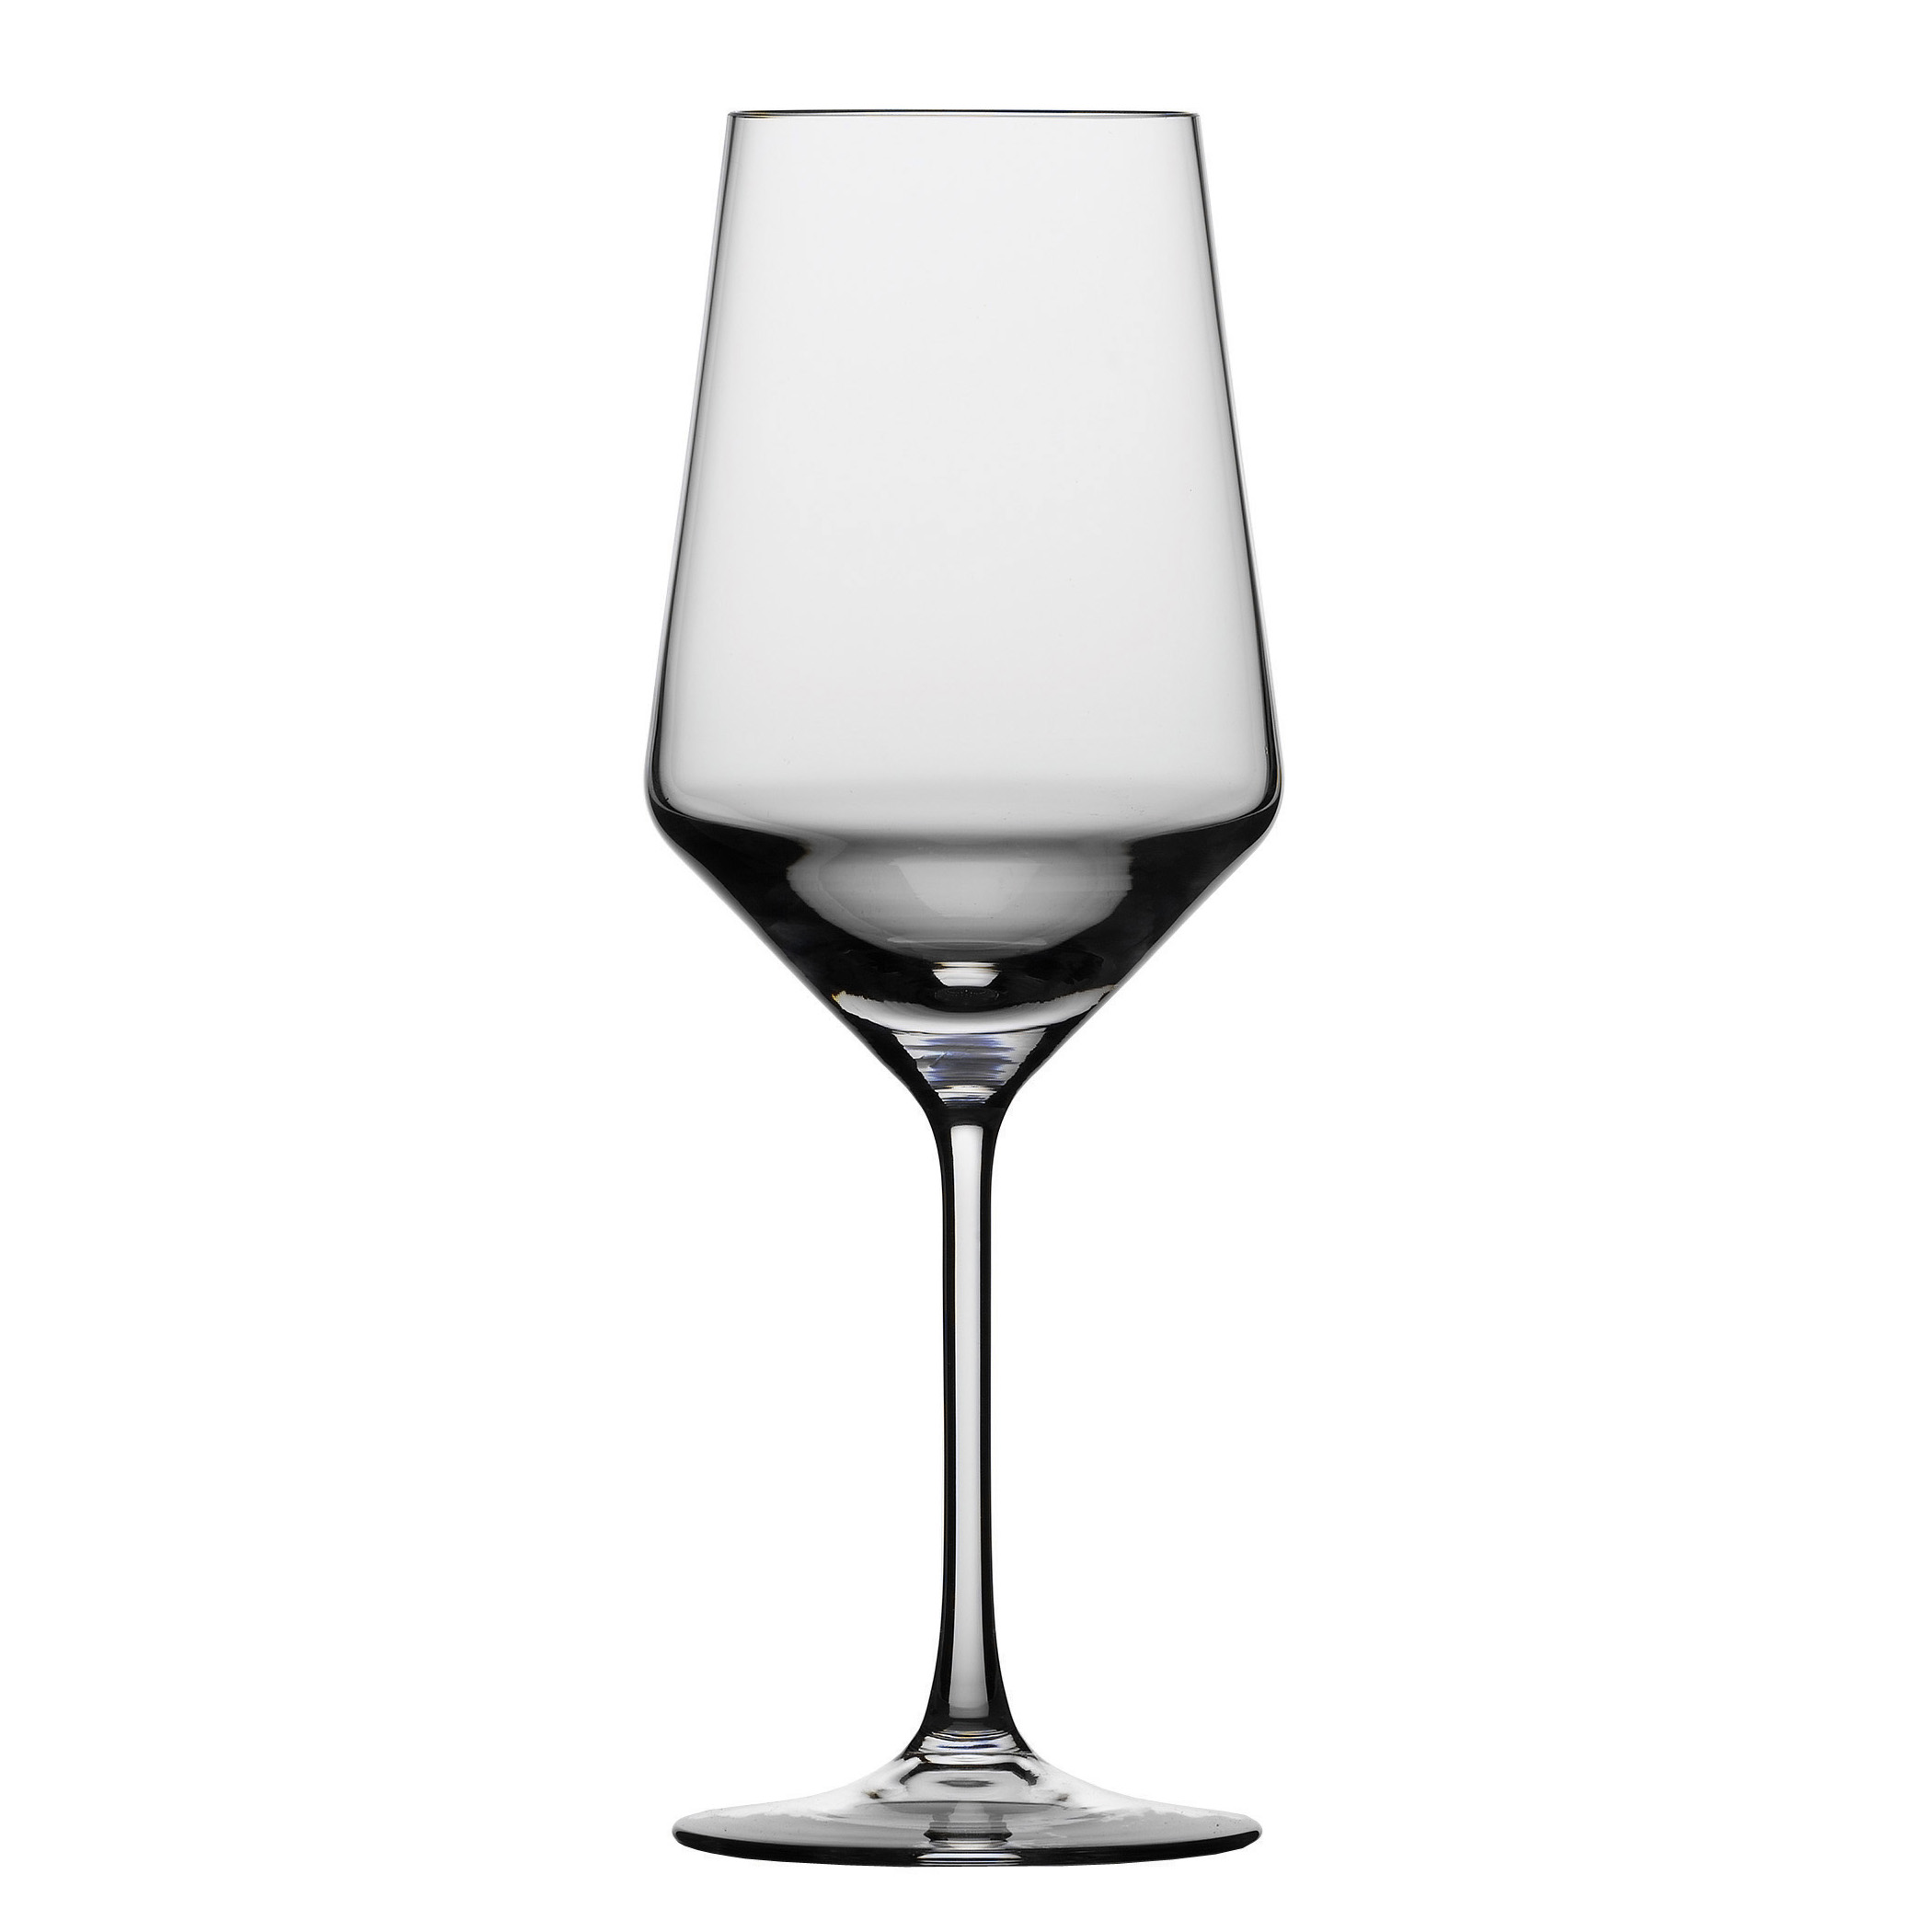 Titanium Crystal Wine Glasses | Schott Zwiesel Wine Glasses | Wholesale Plates and Glasses